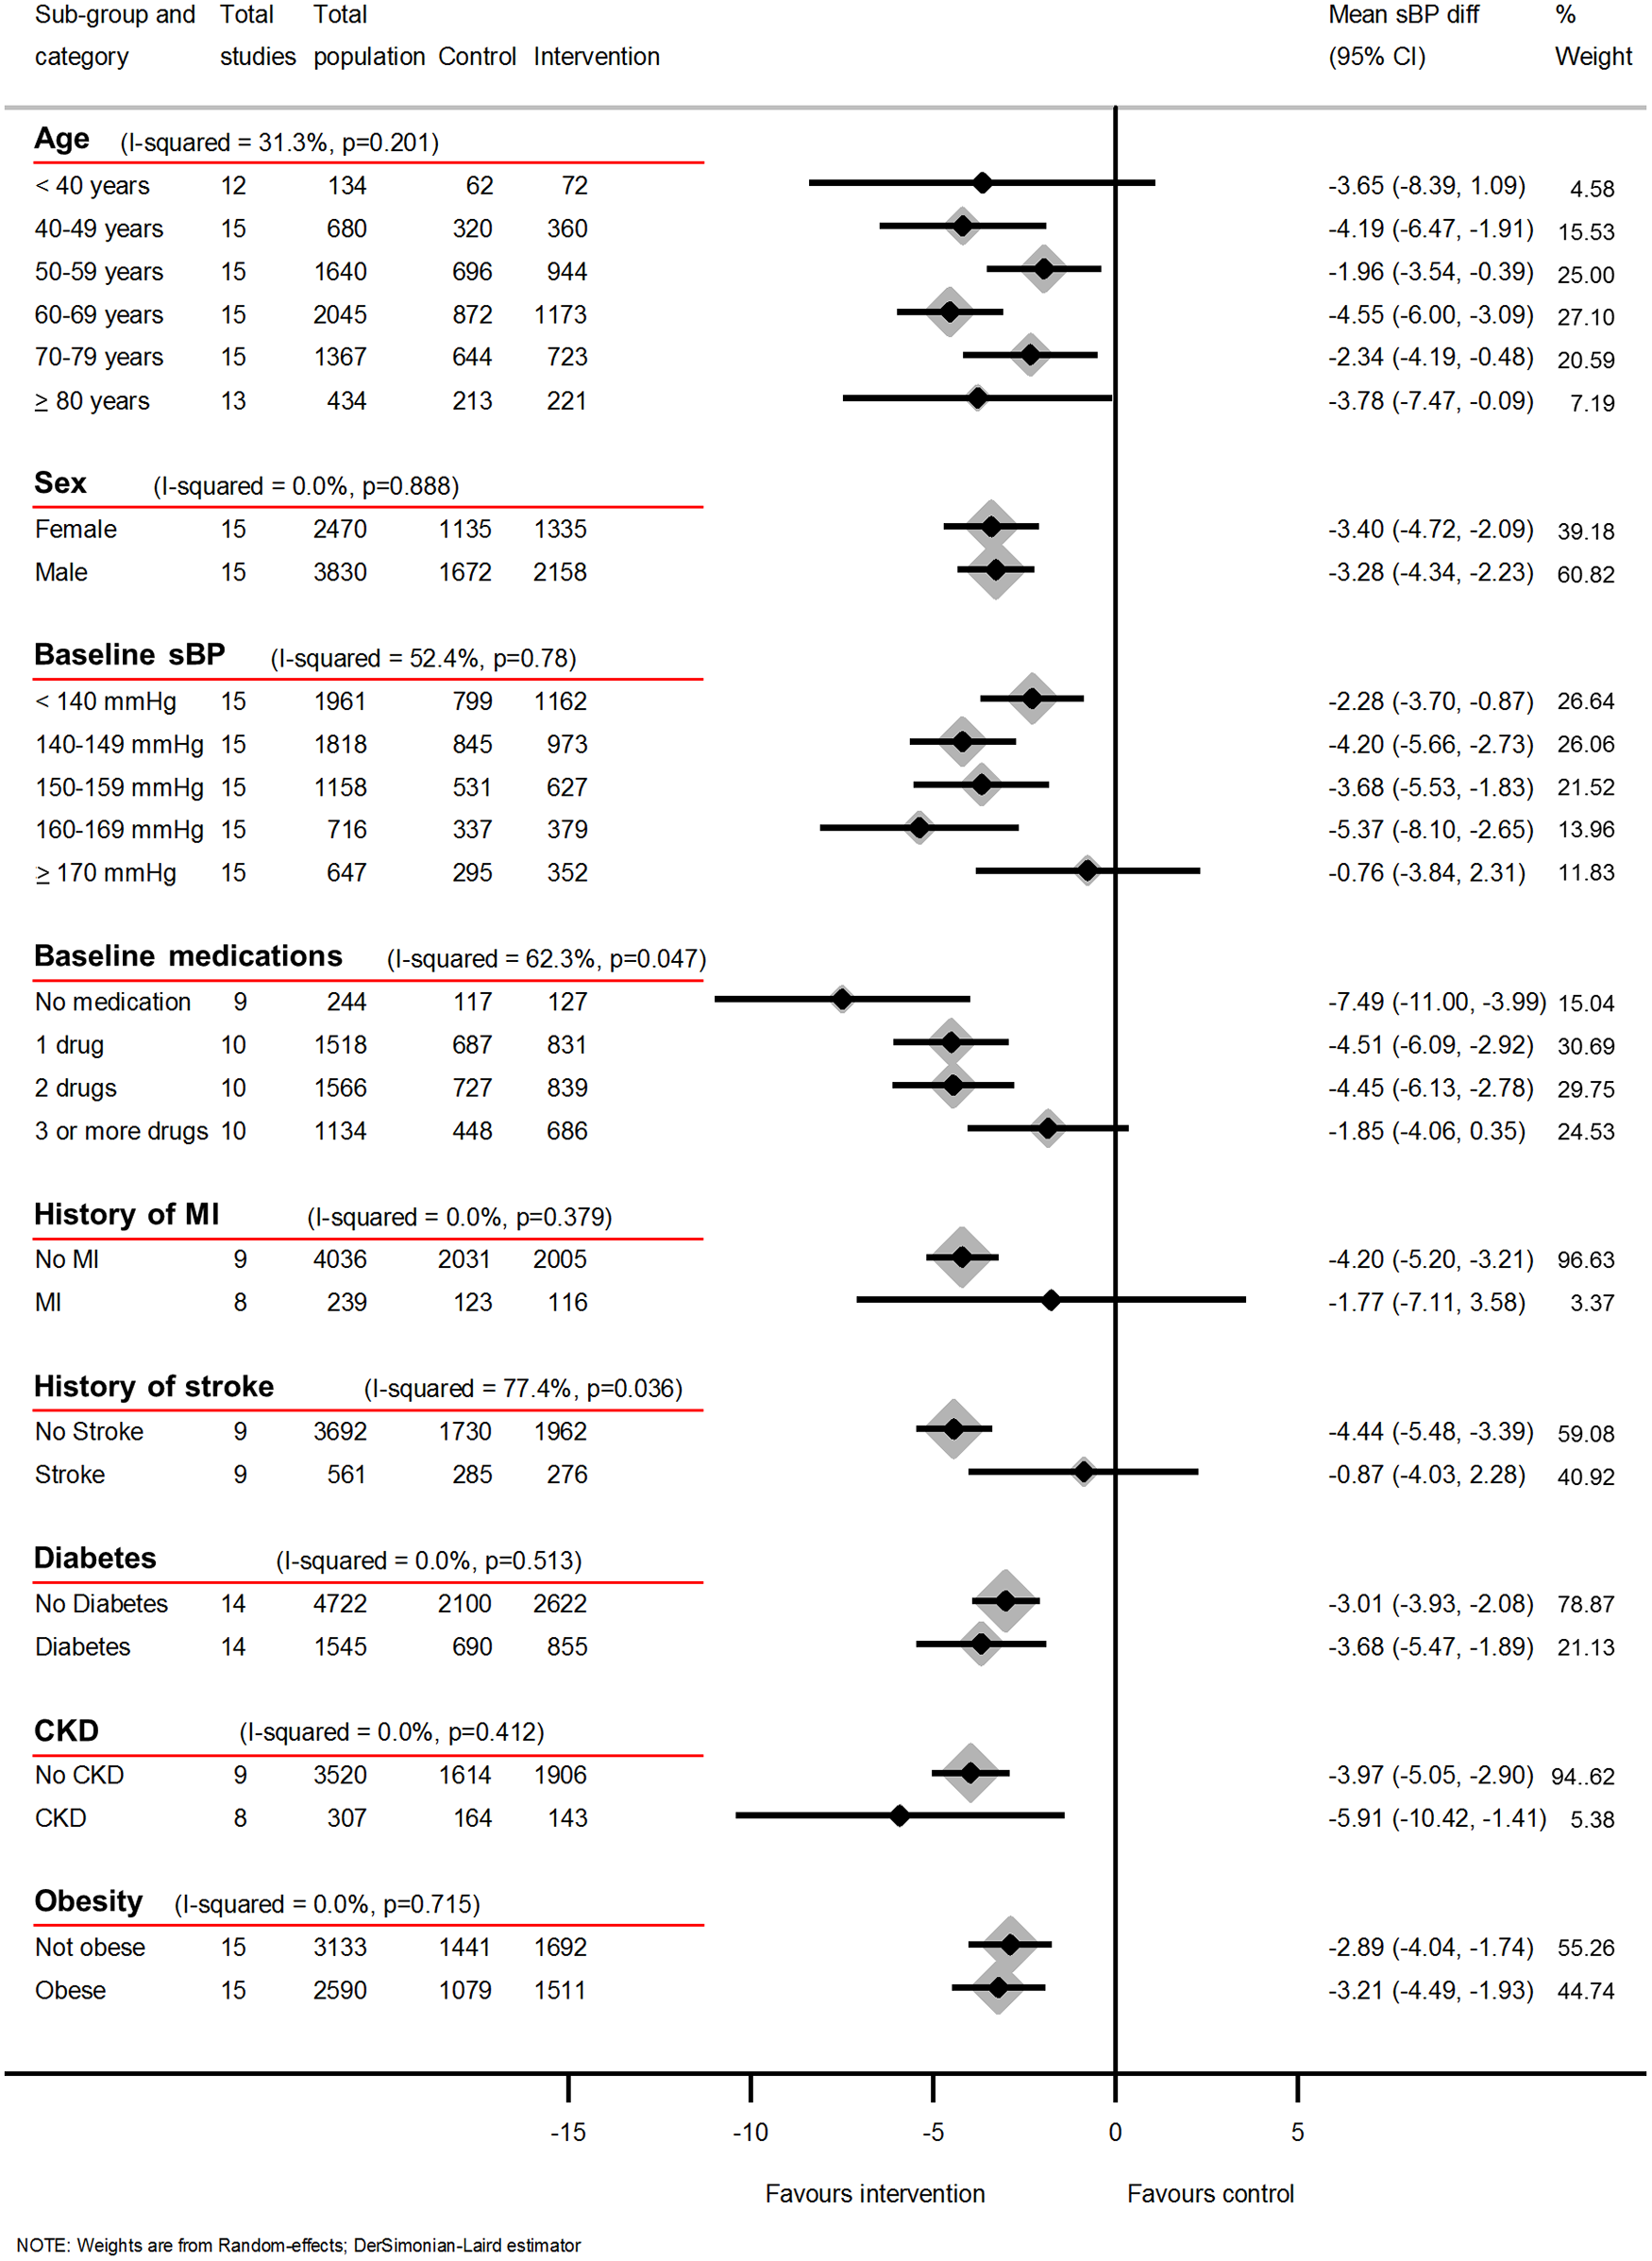 Impact of self-monitoring of BP on clinic sBP at 12 months according to prespecified subgroups (15 studies).